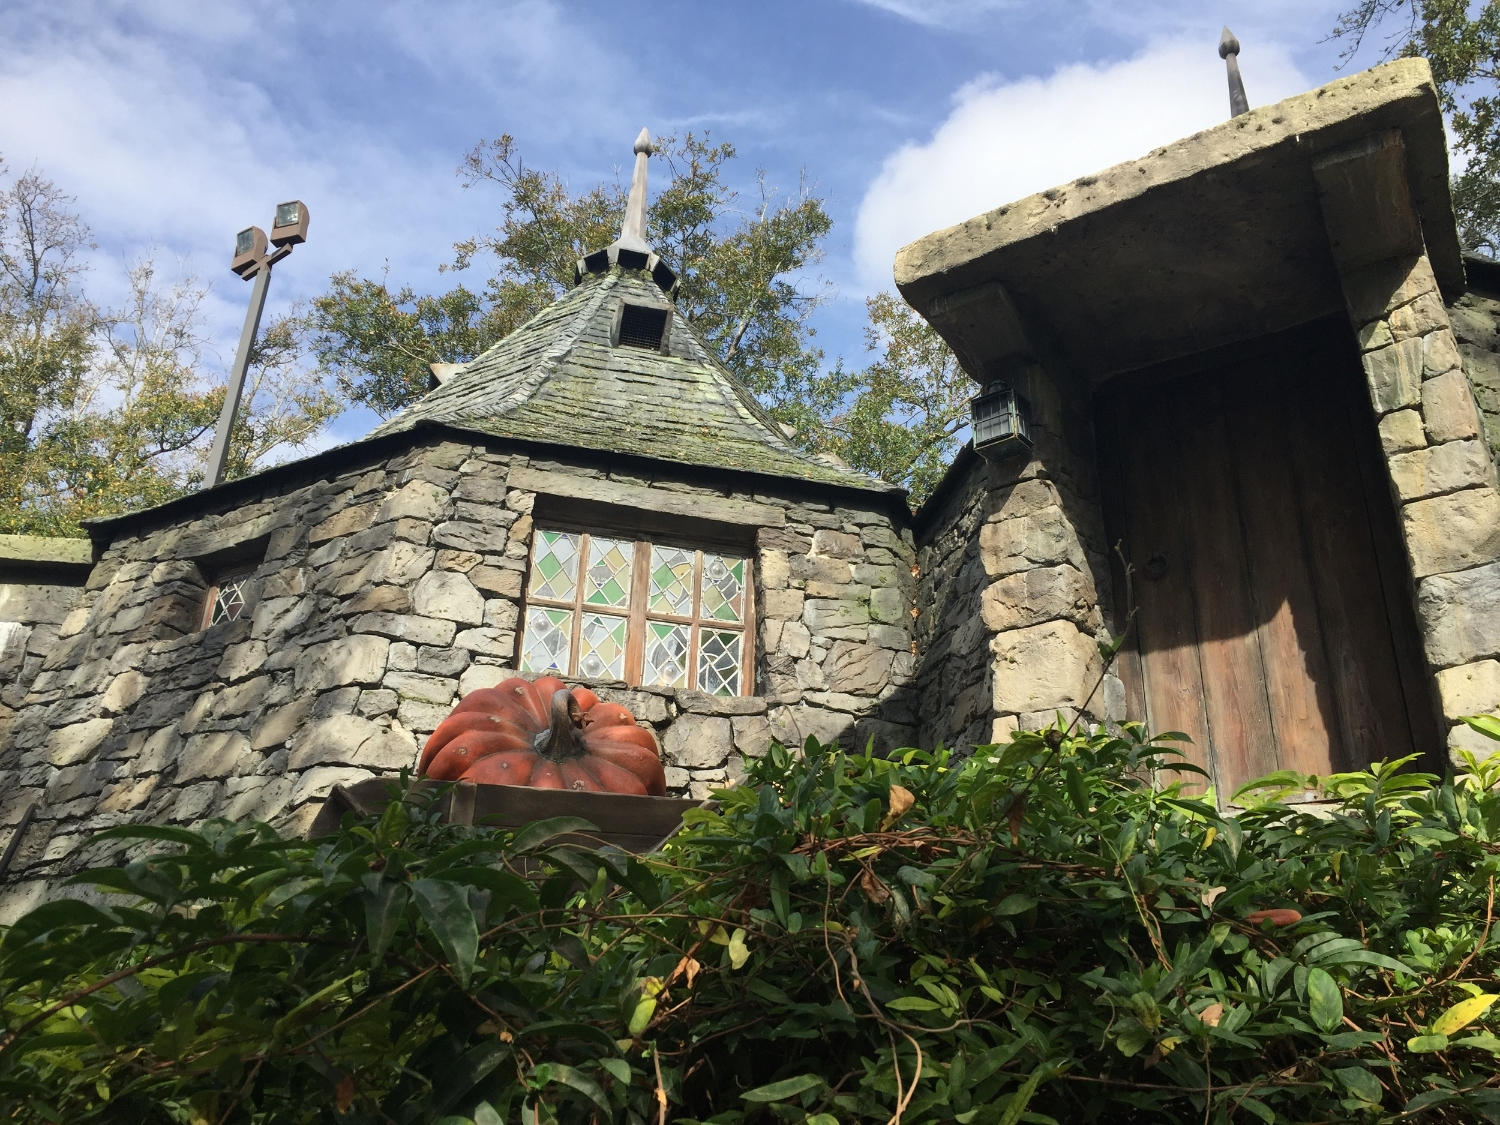 Big Pumpkin Outside Hagrid's Hut Near Flight of the Hippogriff